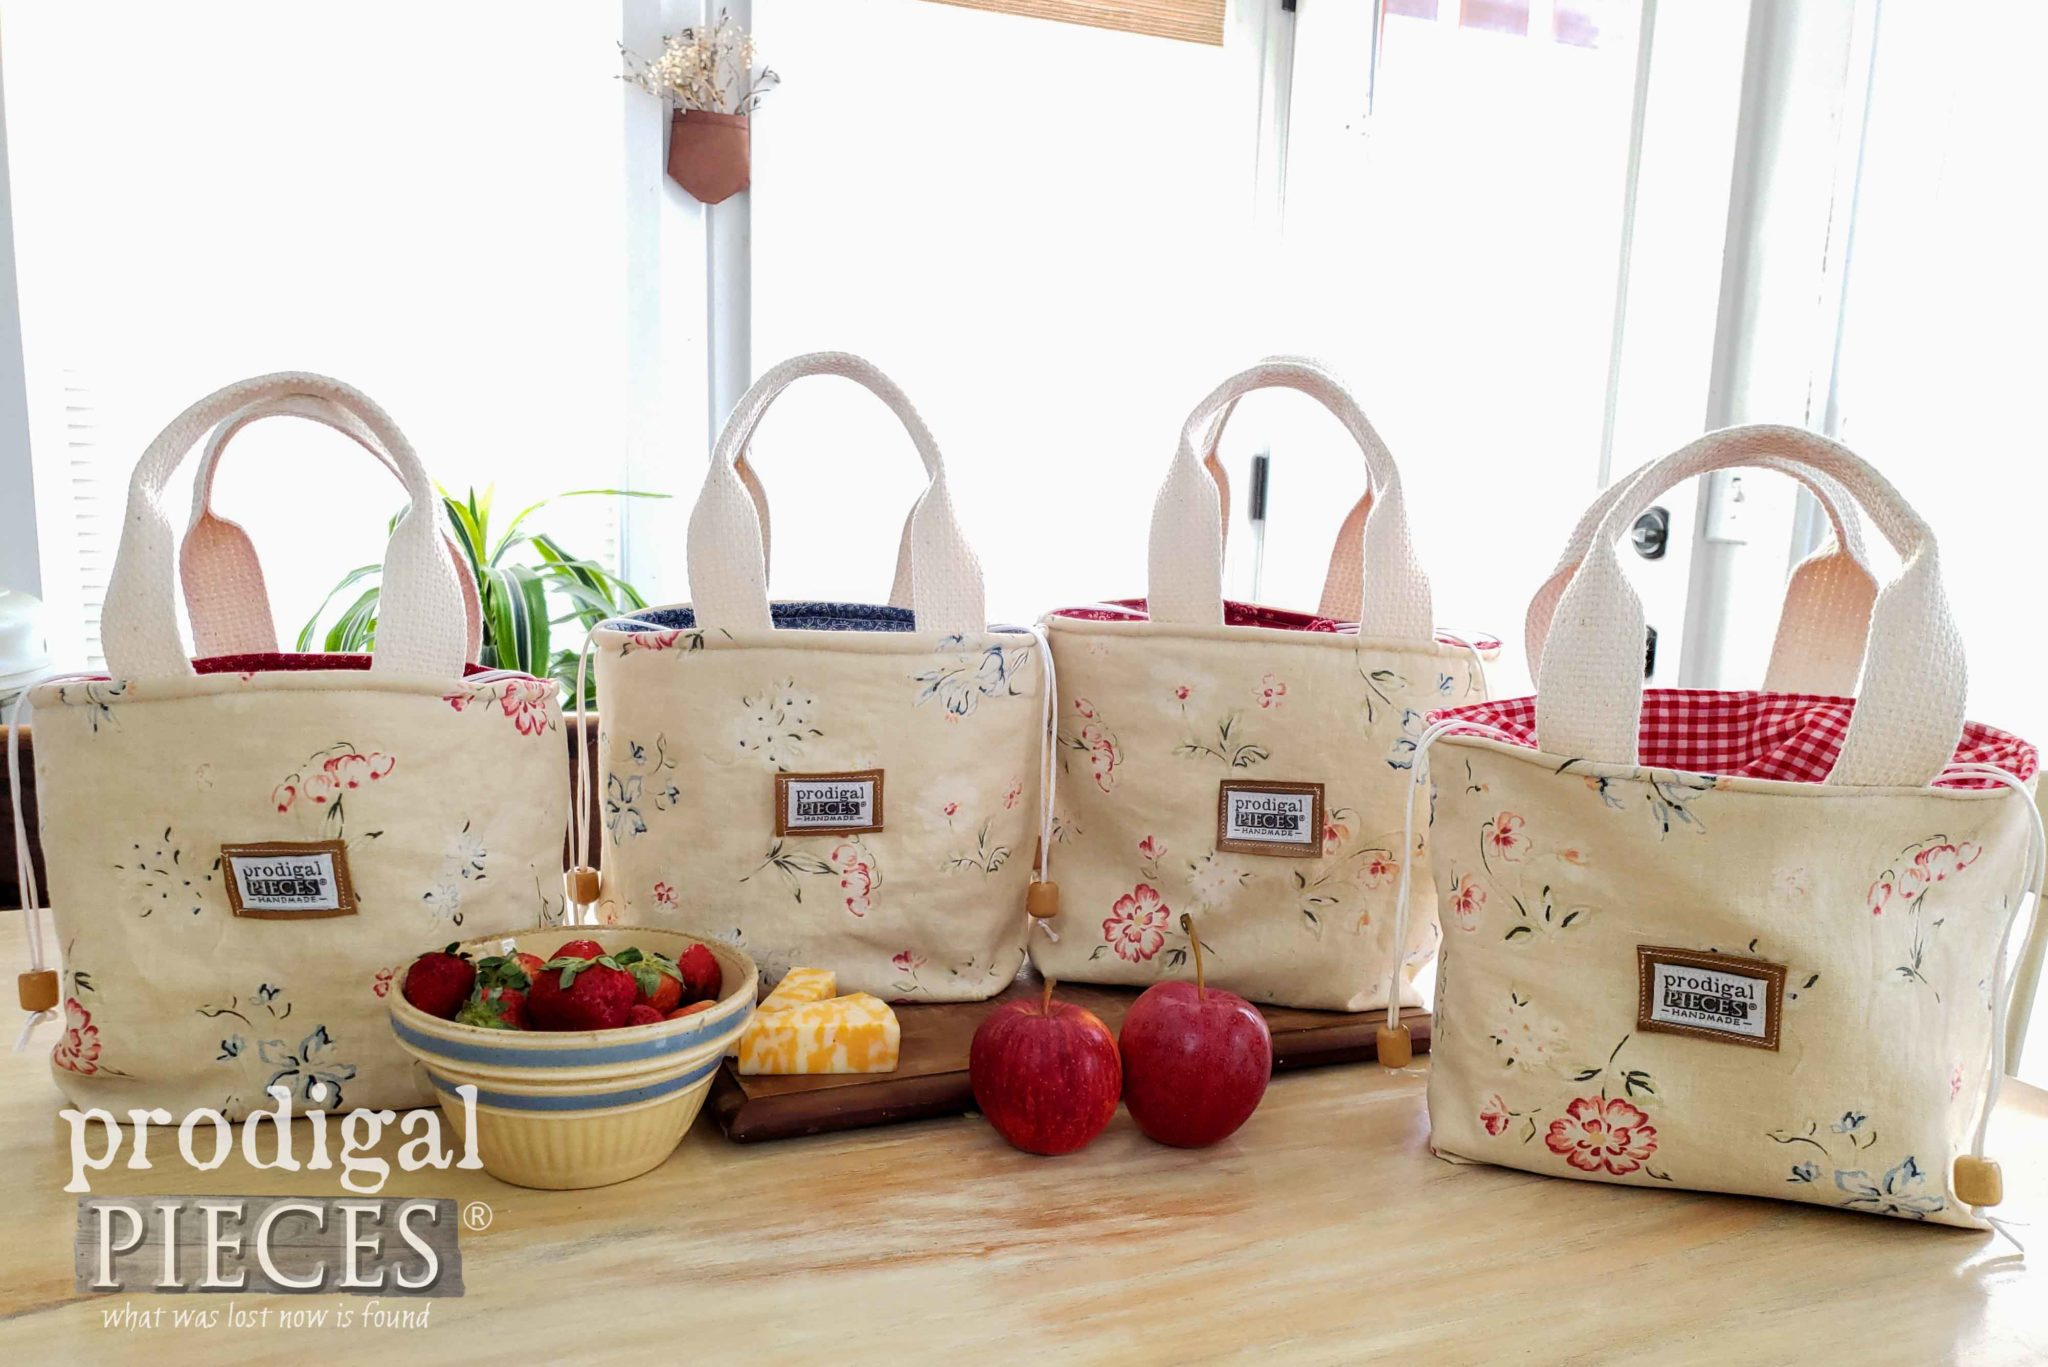 Handmade Insulated Lunch Bags Made from Upcycled Linen Skirt by Larissa of Prodigal Pieces | prodigalpieces.com #prodigalpieces #handmade #sewing #accessories #style